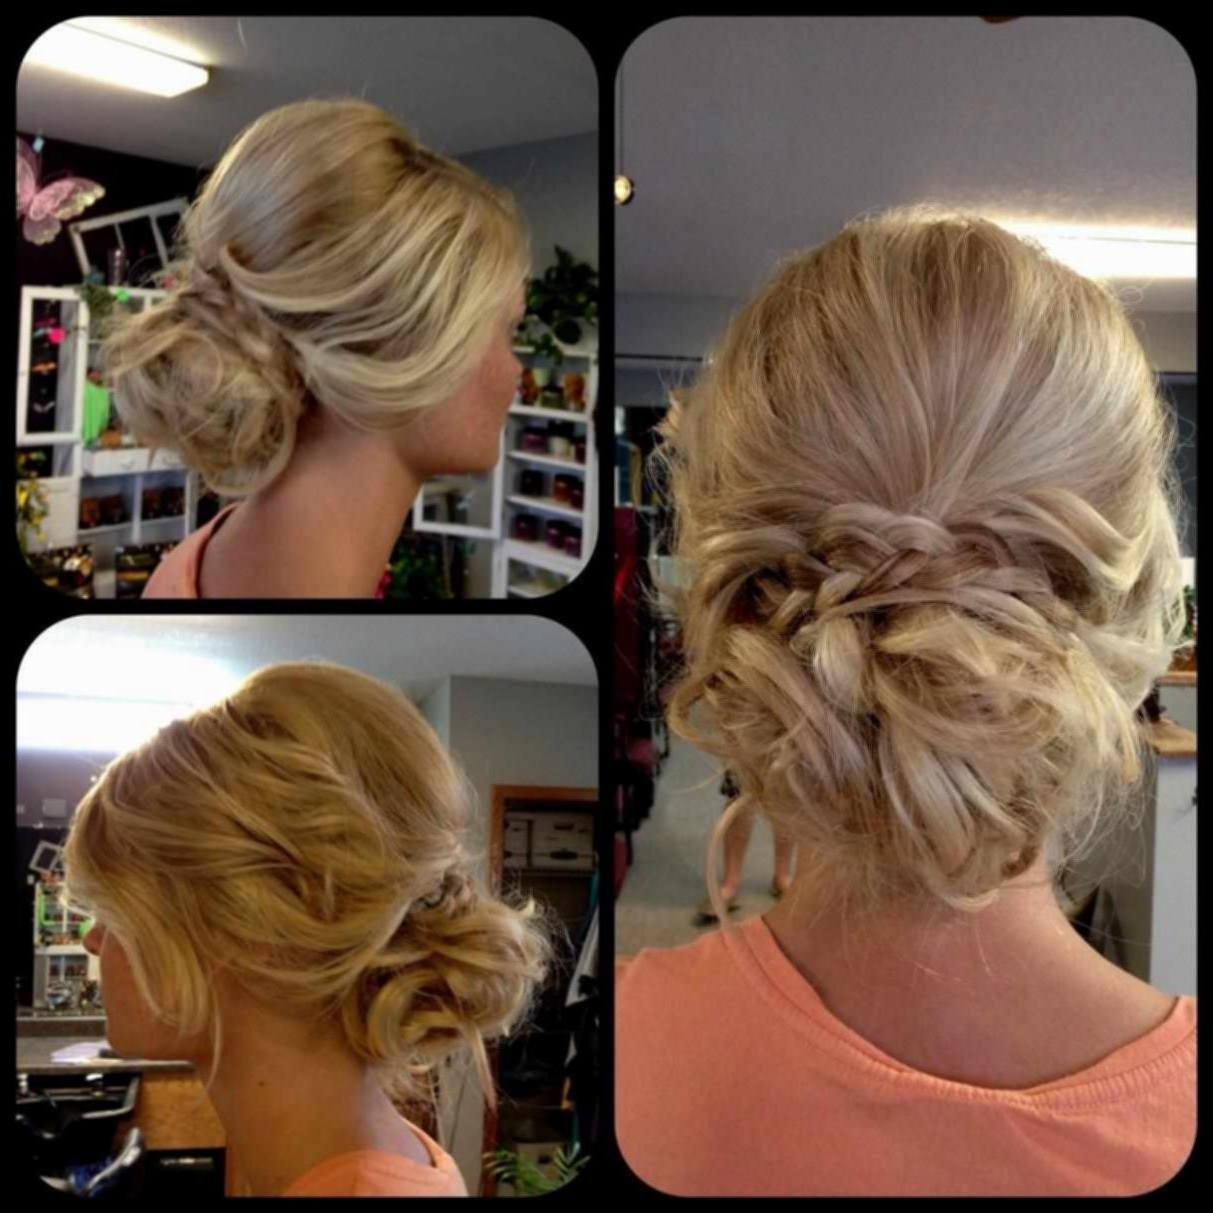 Messy Cute Hairstyles Tumblr Messy Prom Updo Hairstyles Tumblr Side Inside Updo Hairstyles (View 14 of 15)